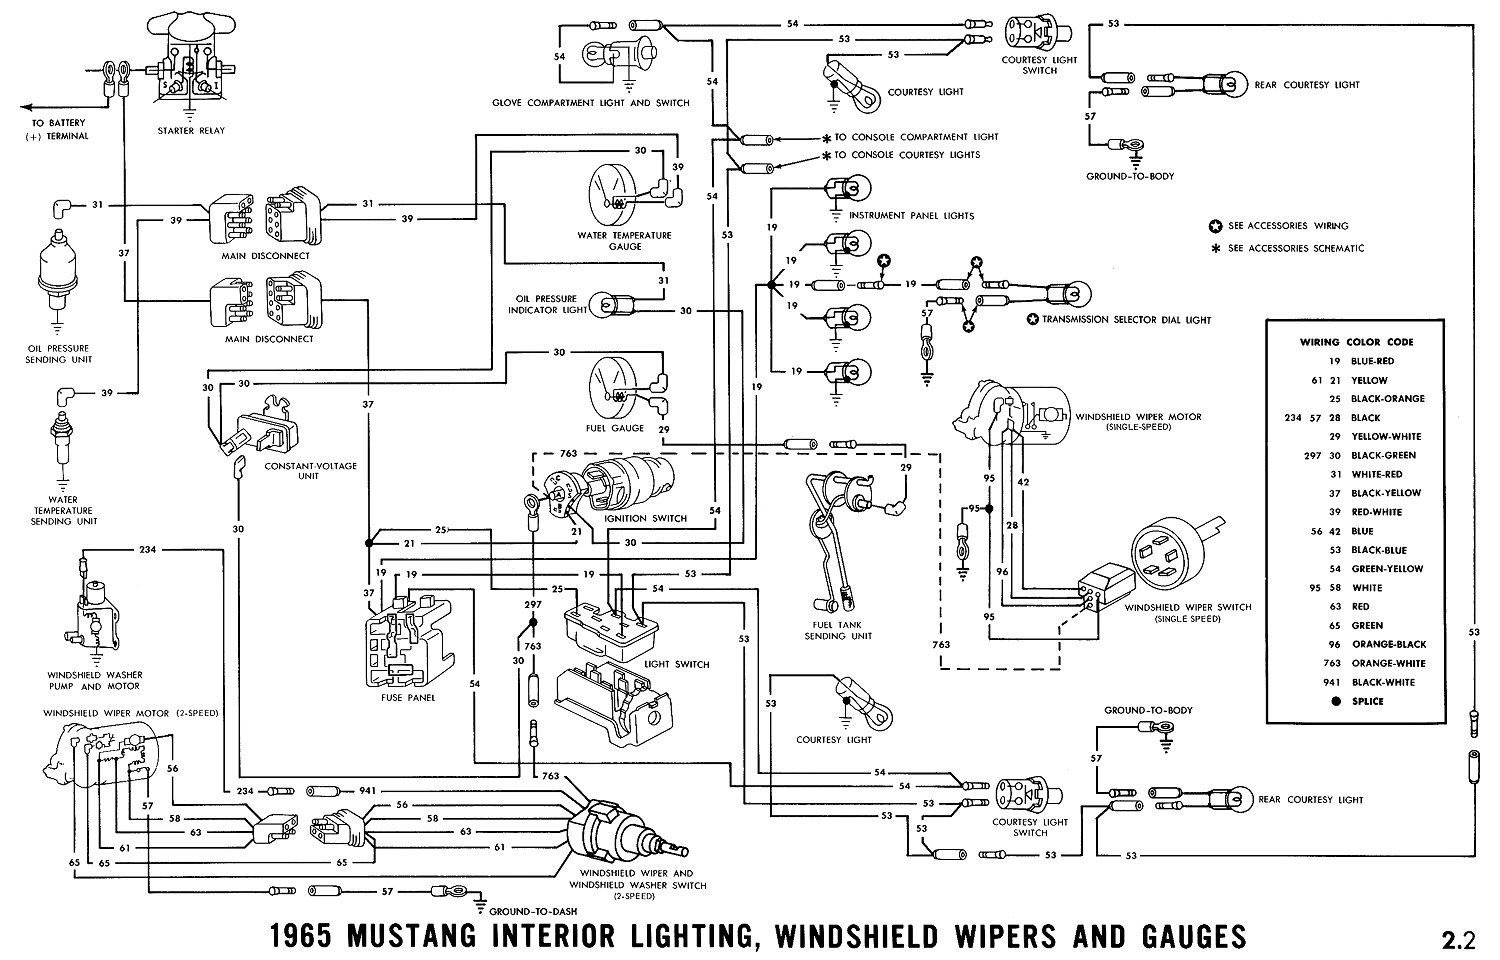 1965g 1965 mustang wiring diagrams average joe restoration light switch diagram 1960 chevy pickup at soozxer.org